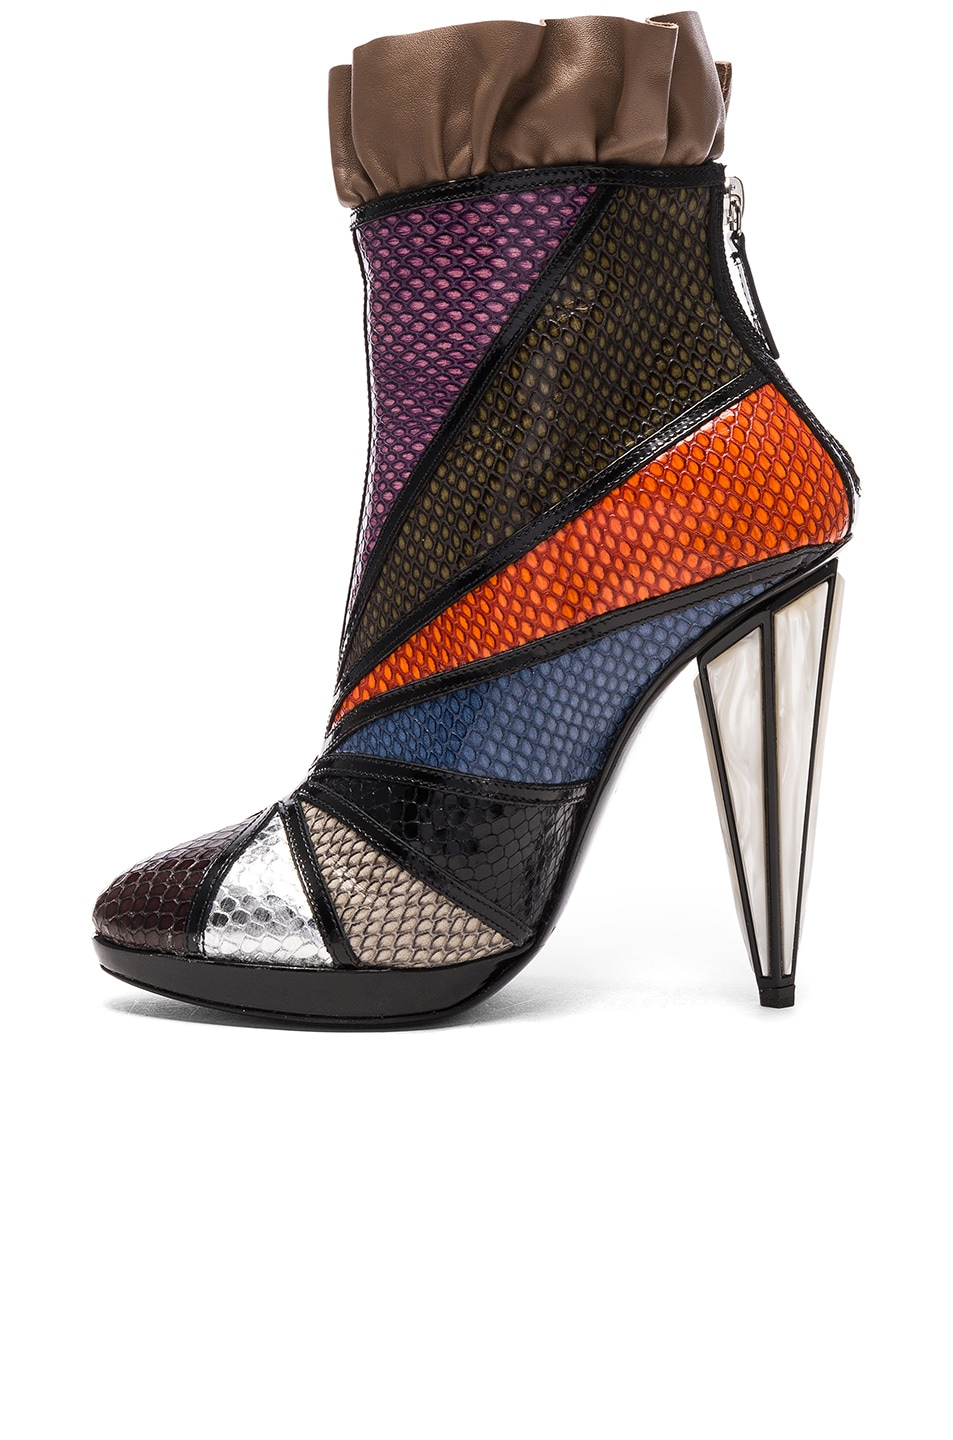 Image 5 of Rodarte Embossed Metallic Leather Ankle Booties in Multi